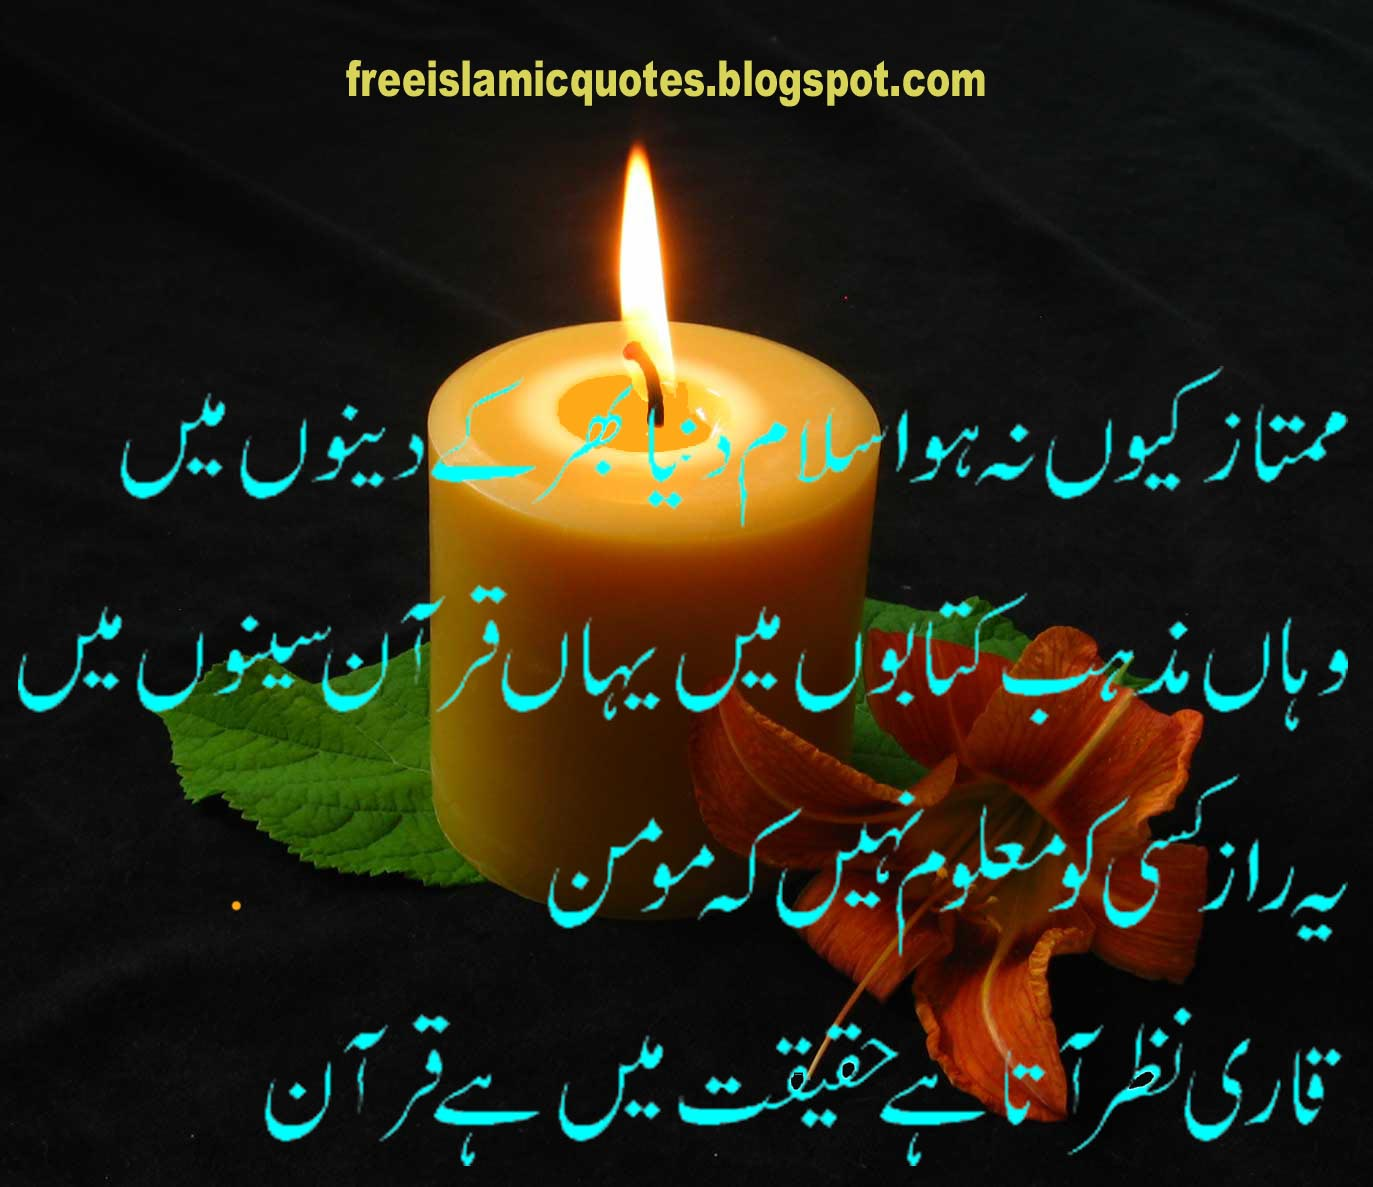 Islamic Quotes In Urdu Wallpapers: Inspirational Islamic Poetry ...